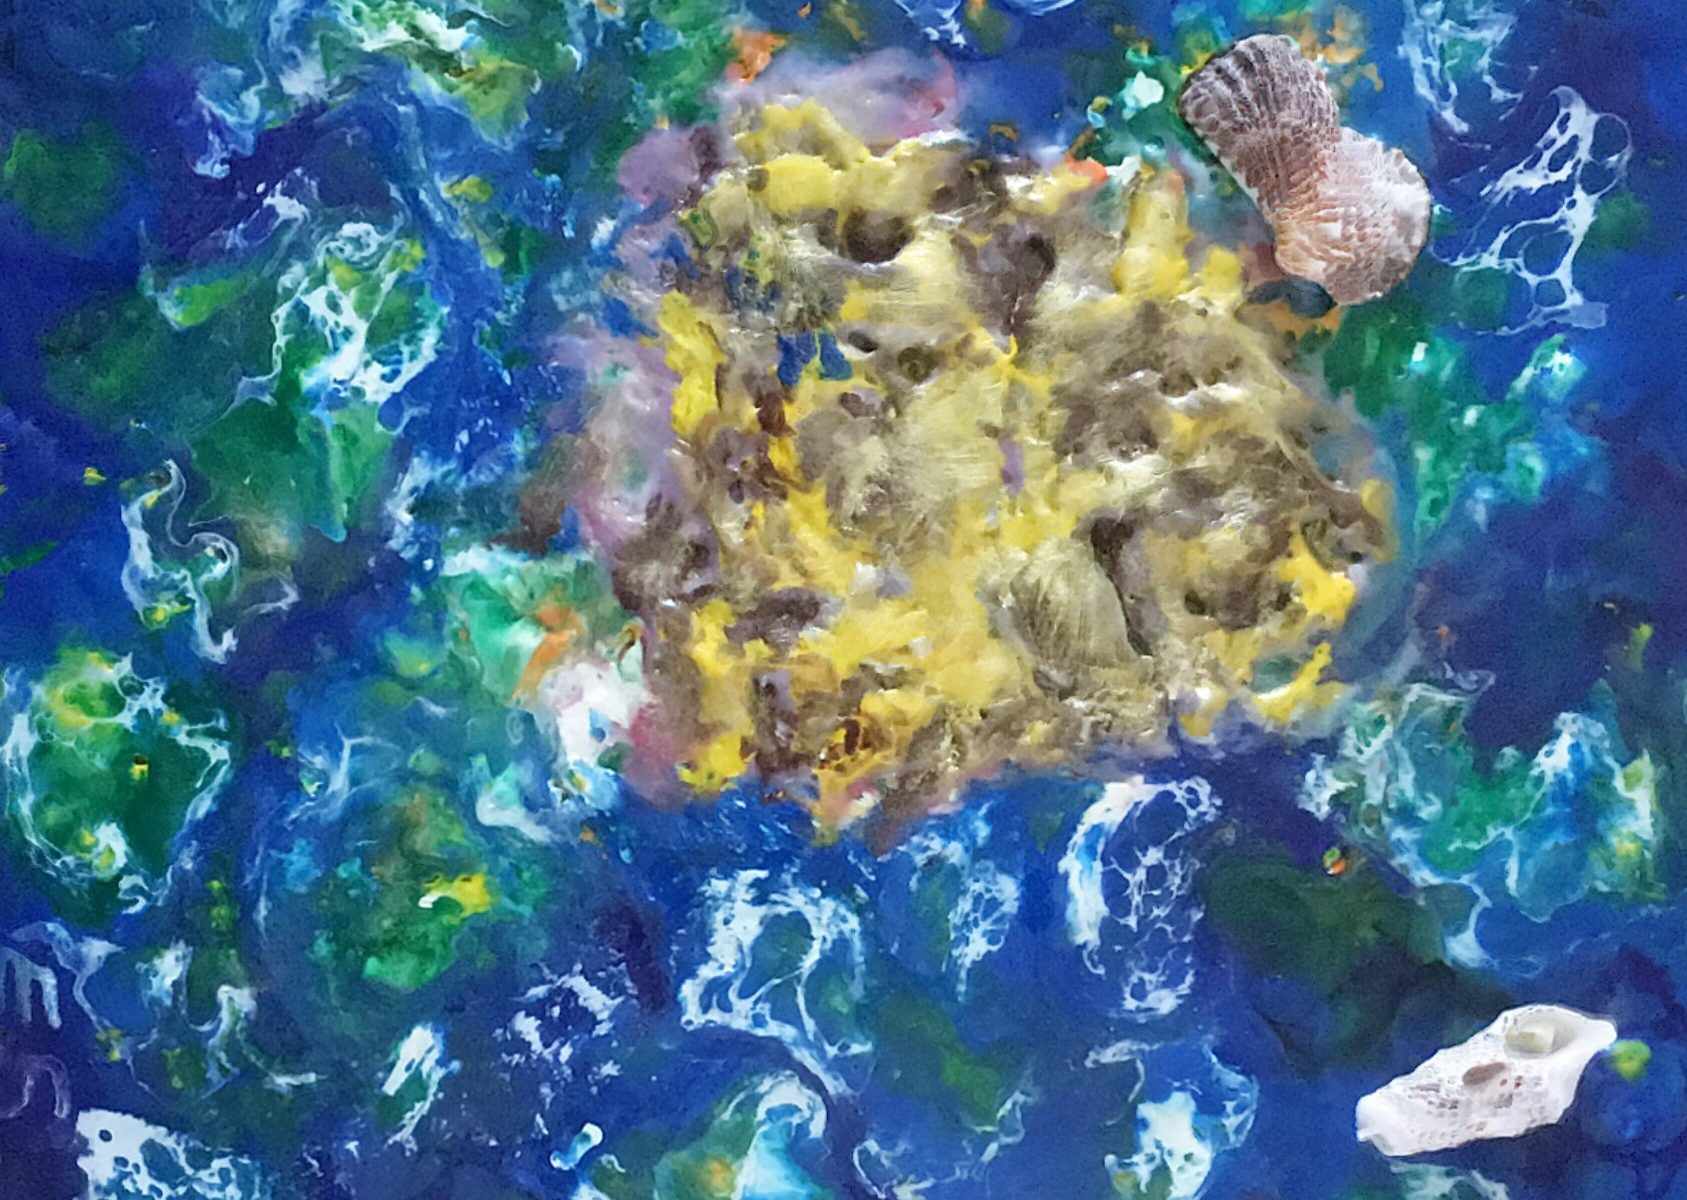 Goldinsel/The Golden Isle; Encaustic, saeta and shellac technique, real mussels; on wood, MDF (medium density fiberboard), 20x20